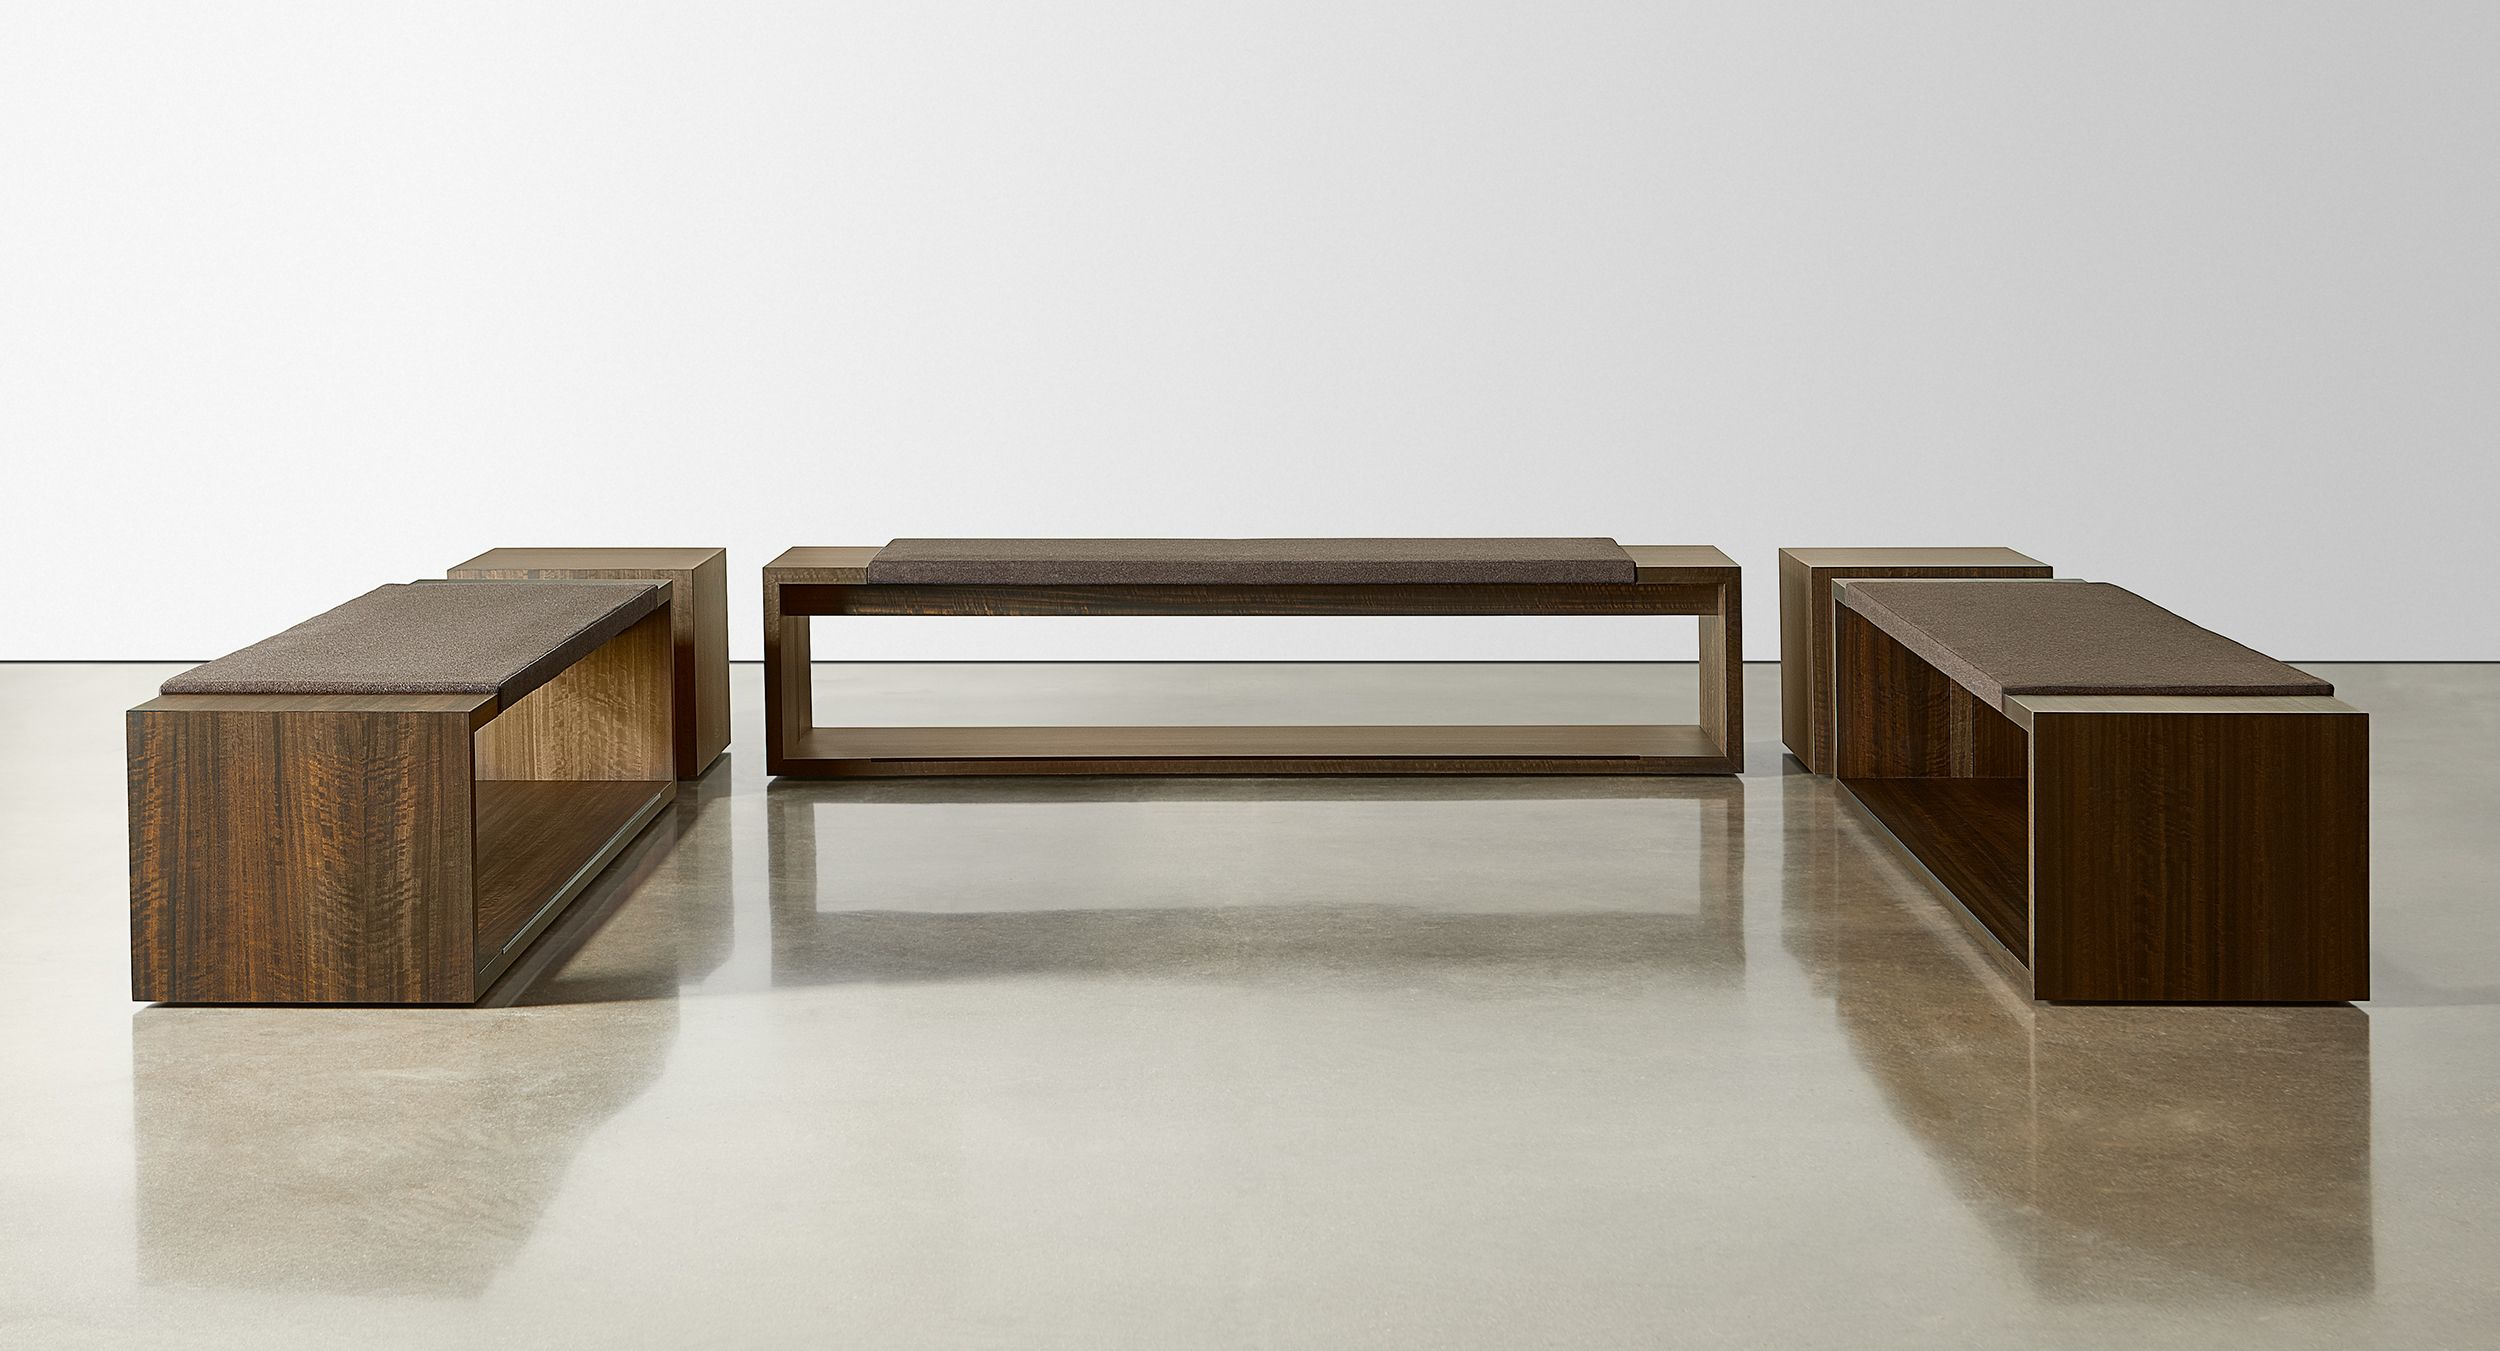 OXER incorporates minimalist lines into a bench seating design that speaks to simplicity and modernism.